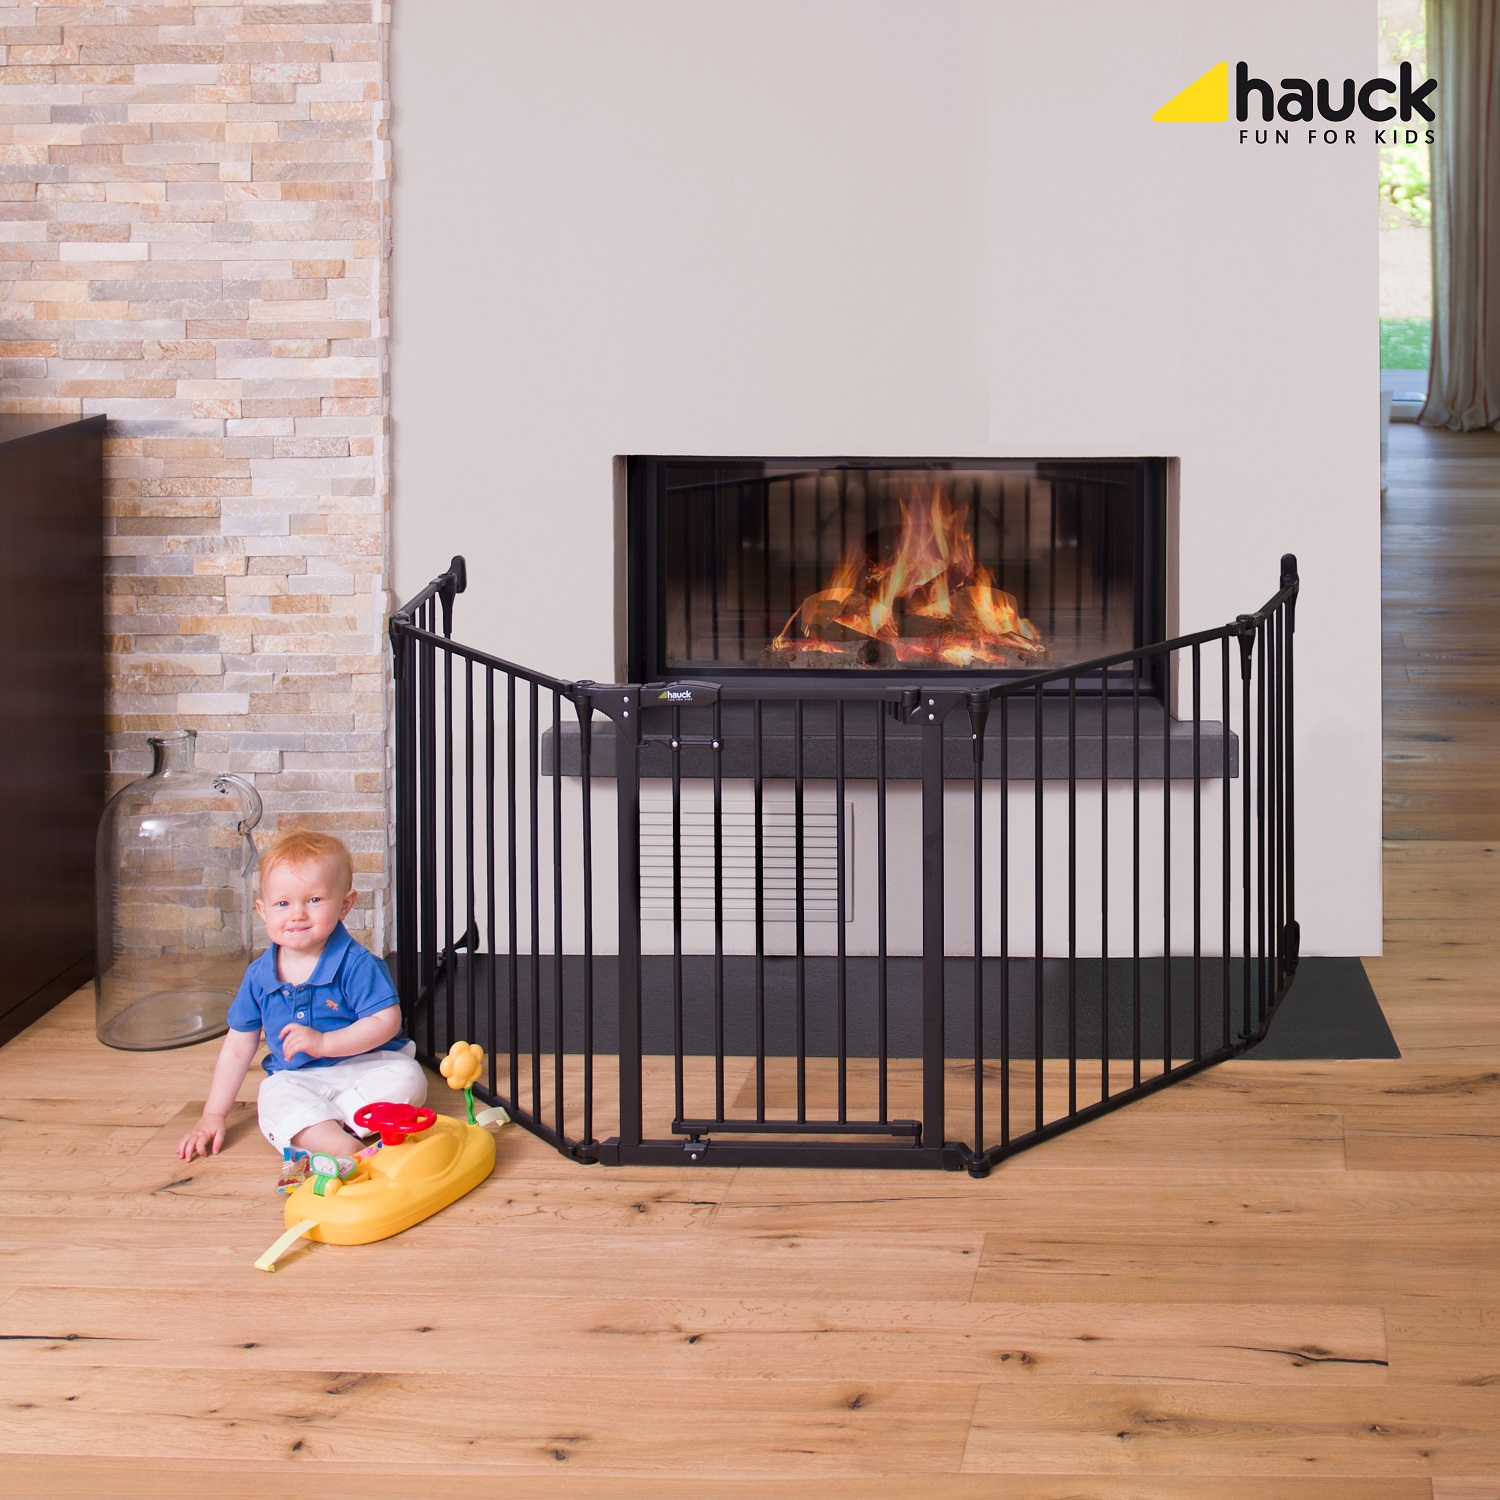 Distance From Fireplace To Rug: Hauck Fire Guard XL - Buy At Kidsroom